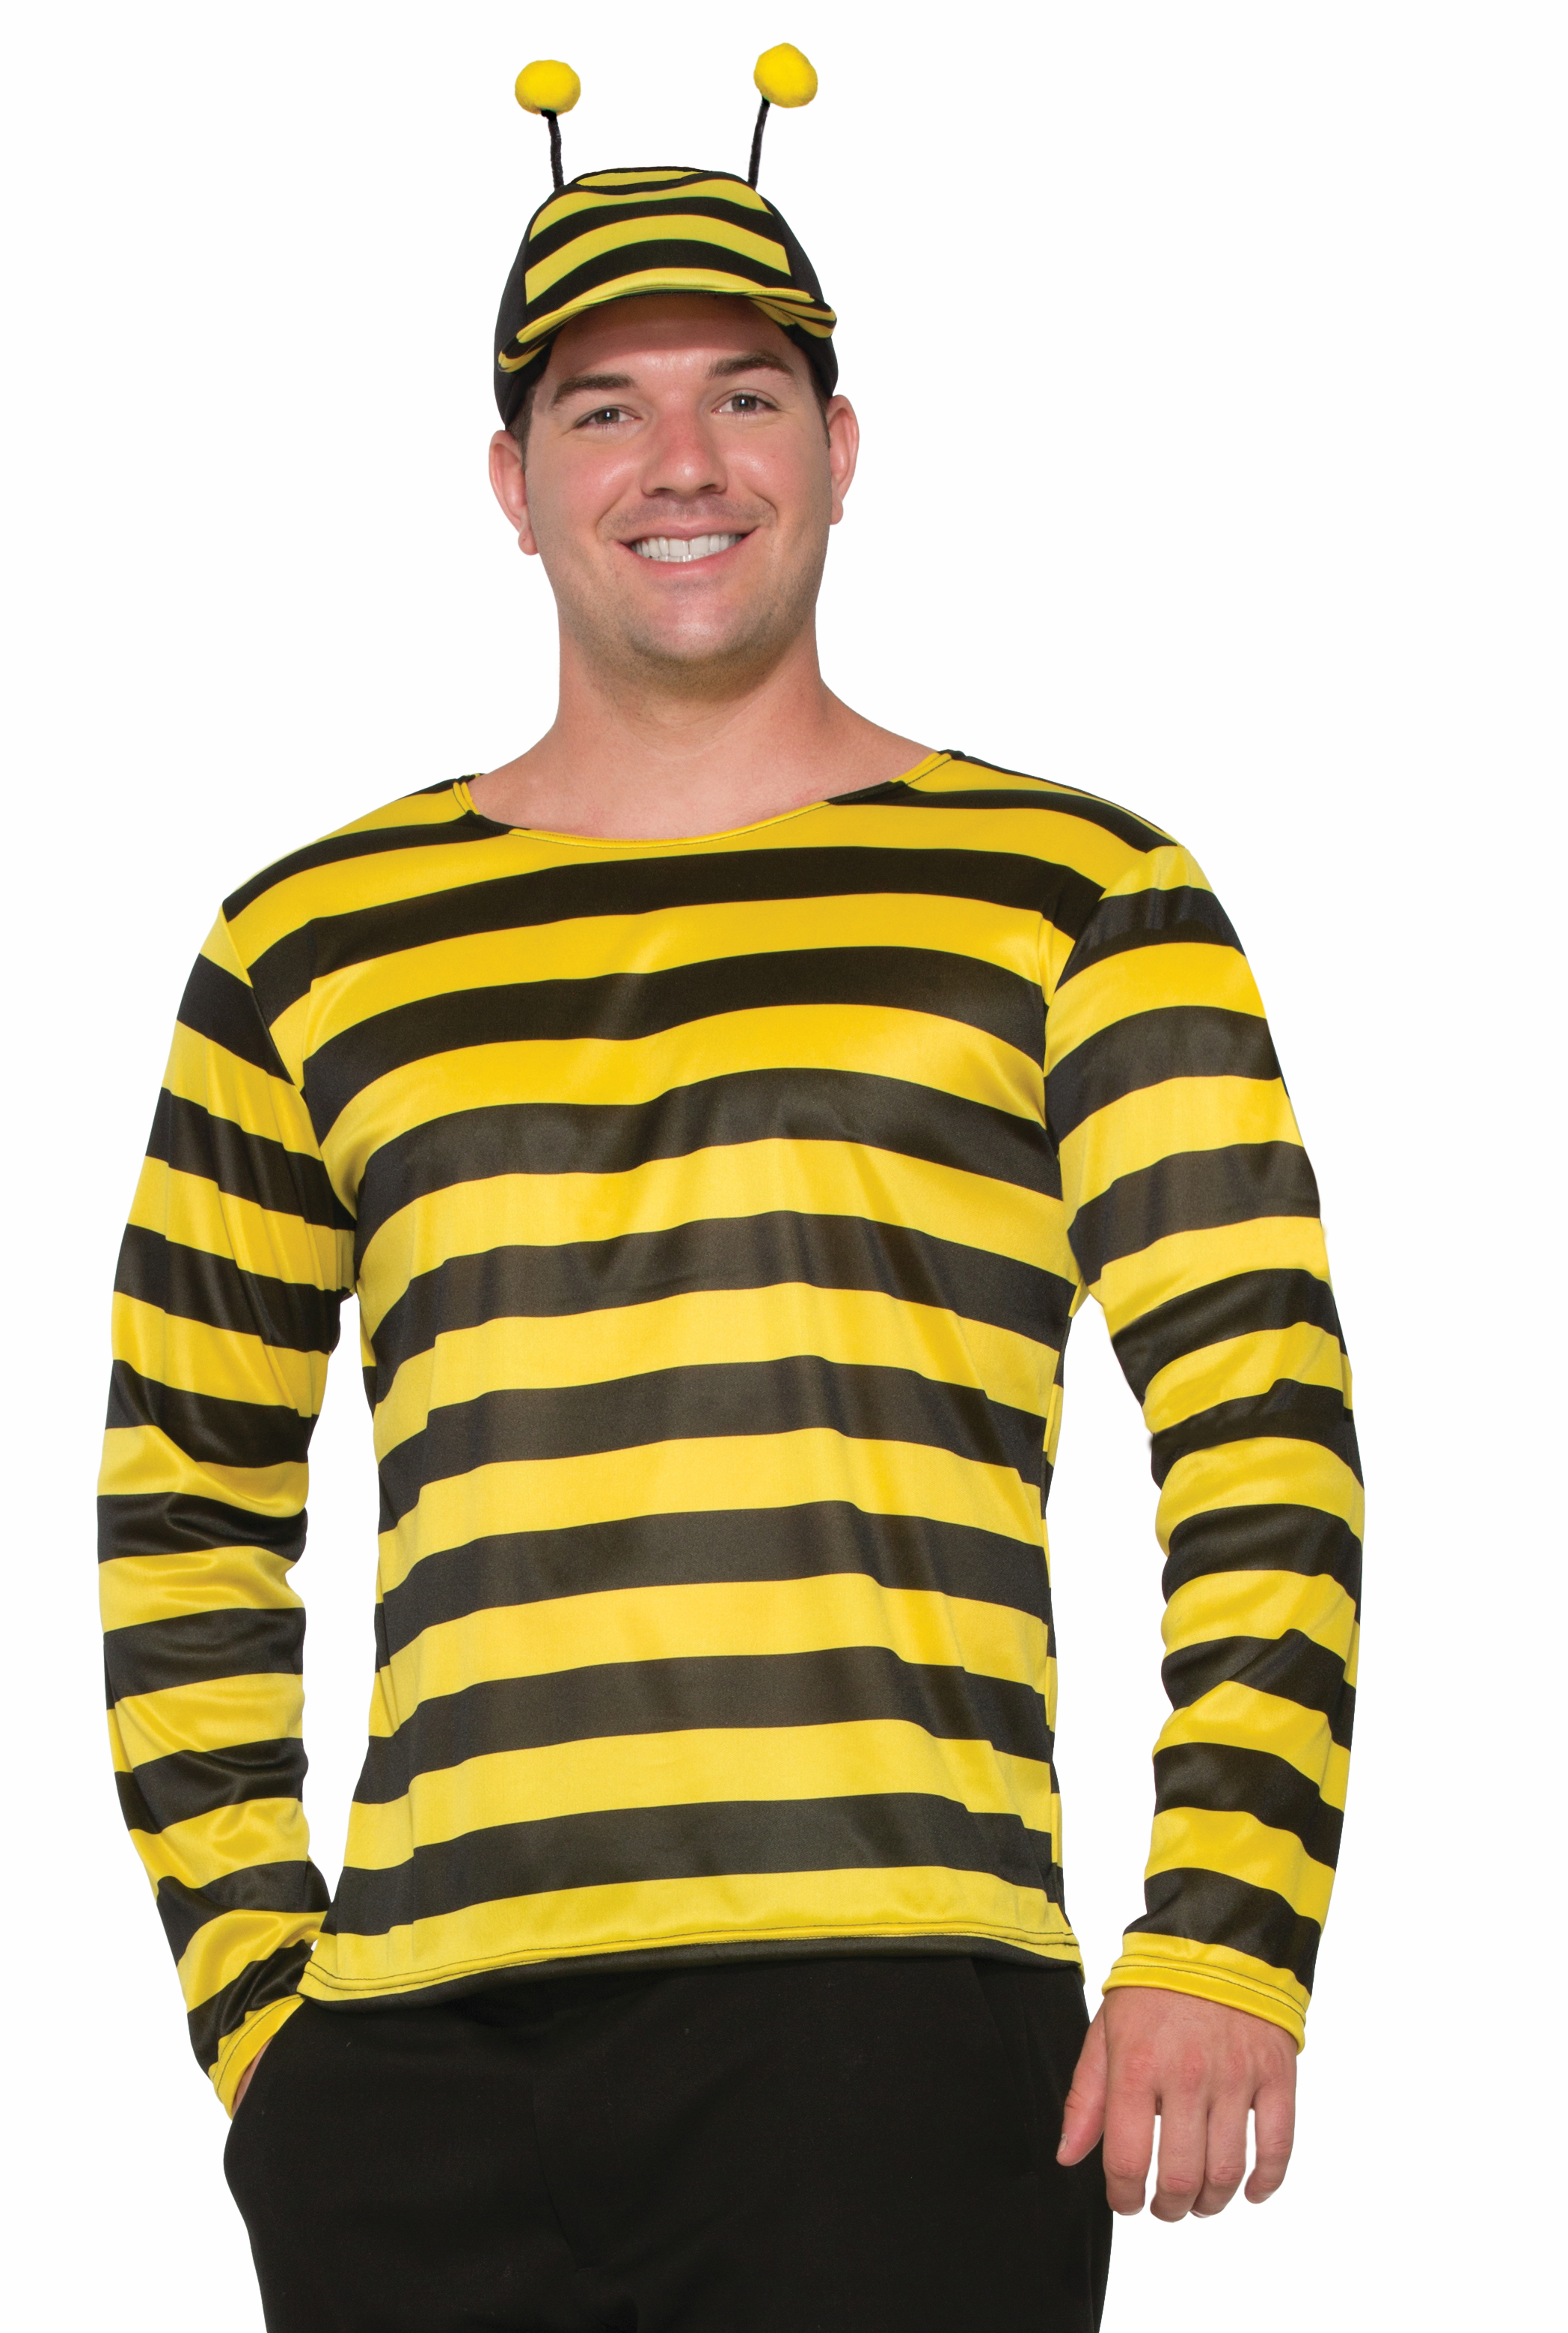 2193c55ba2 Buy Yellow Black Striped Bumble Bee Shirt - Cappel's